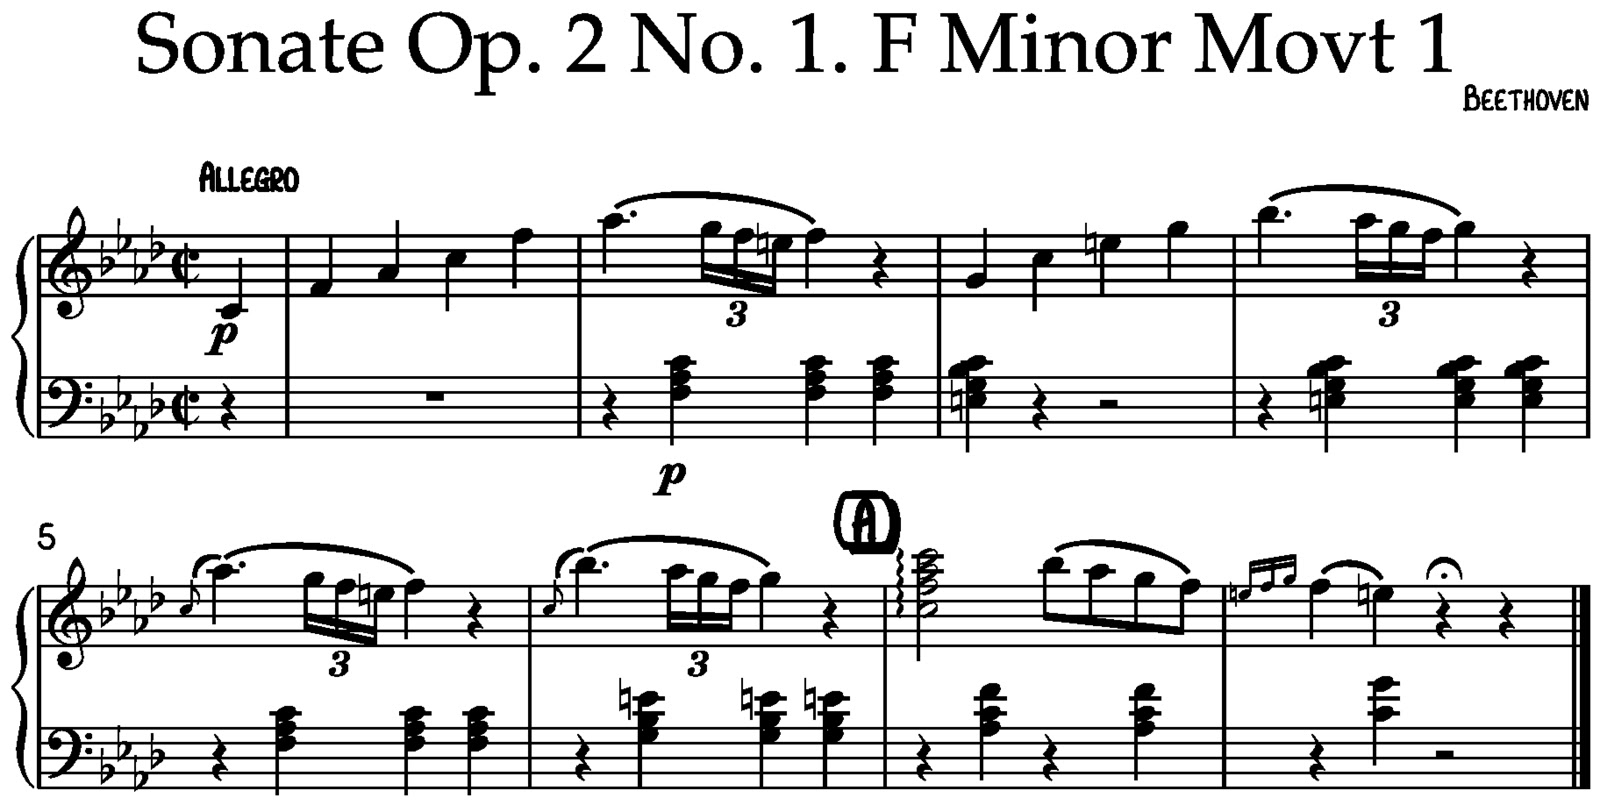 Beethoven sonate for piano op 2 no 1 fmin movt 1 bars 1 8 again this starts with a mannheim rocket starting on the 5 of the tonic chord which leads directly into motive 2 then this motive is sequenced up and in hexwebz Image collections